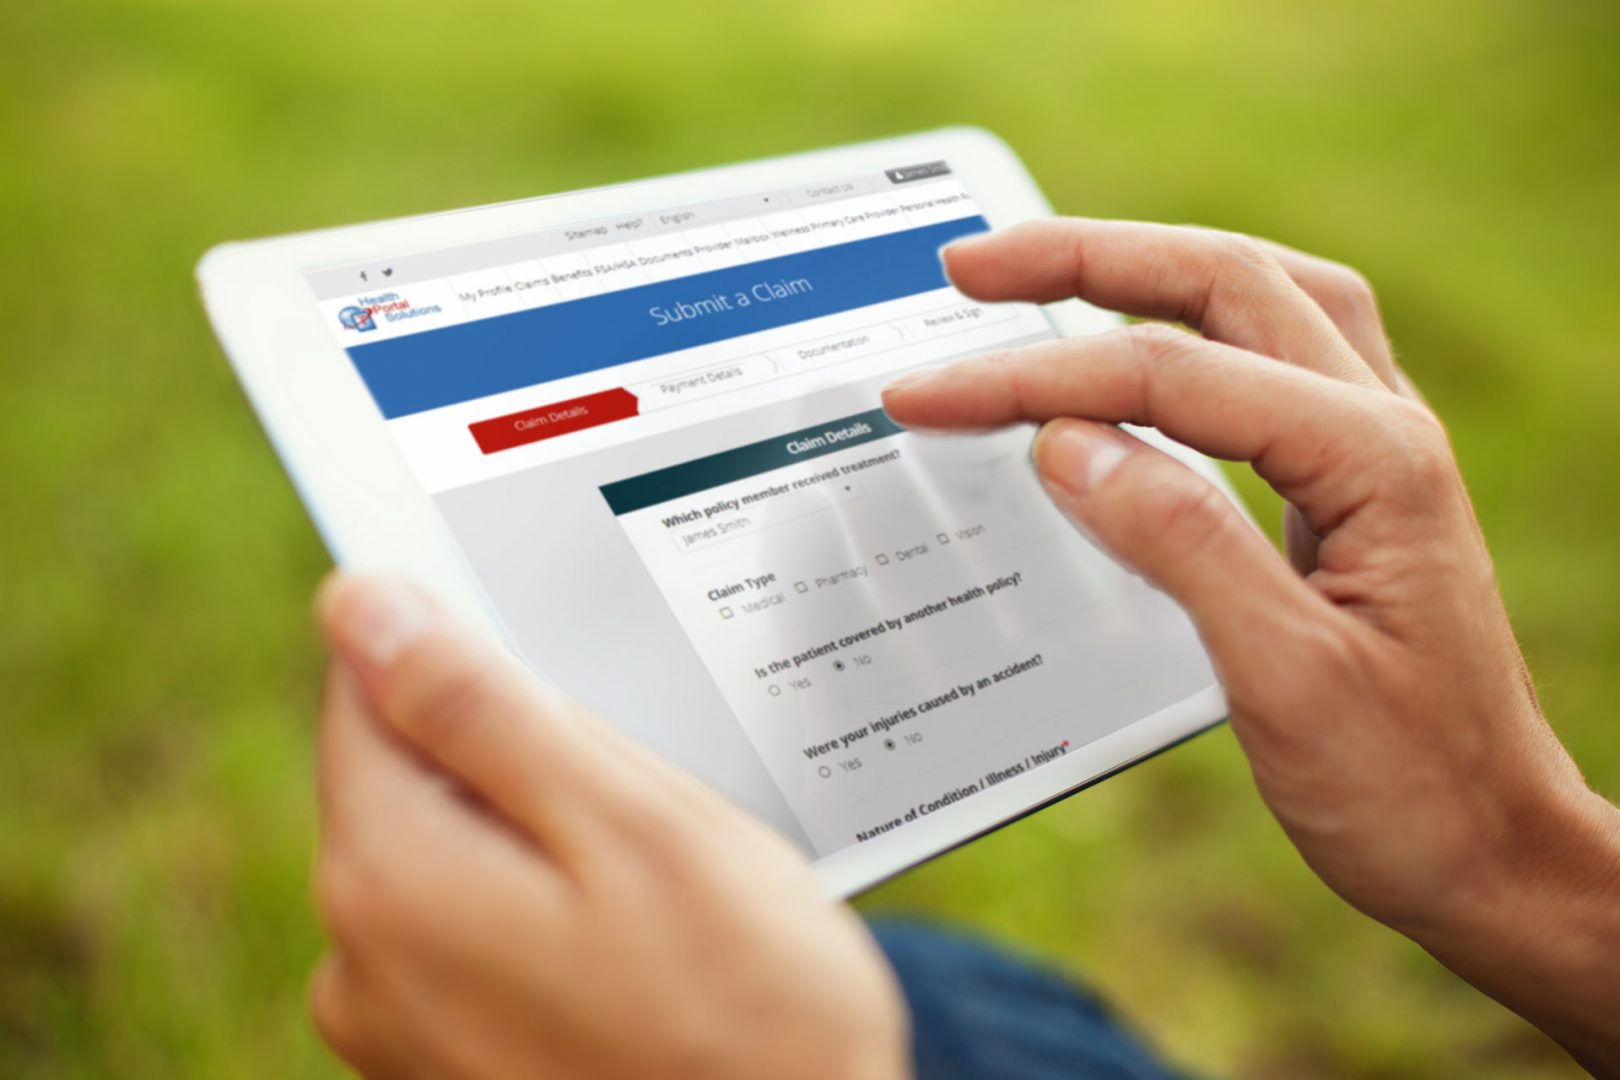 close up of hands touching an ipad to submit a claim while person is outside on the grass